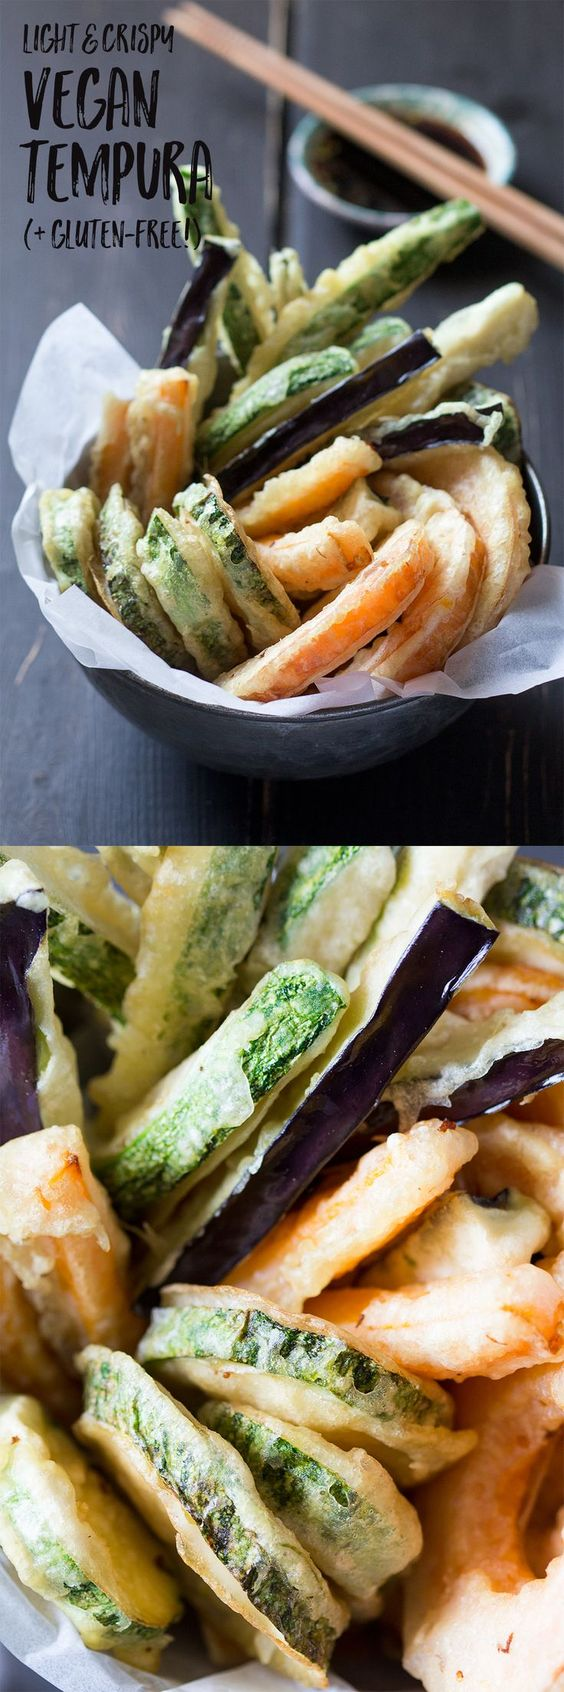 Light and crispy vegetable tempura makes an ideal dinner party appetizer. It's easy to make, vegan and can easily be made gluten-free too.